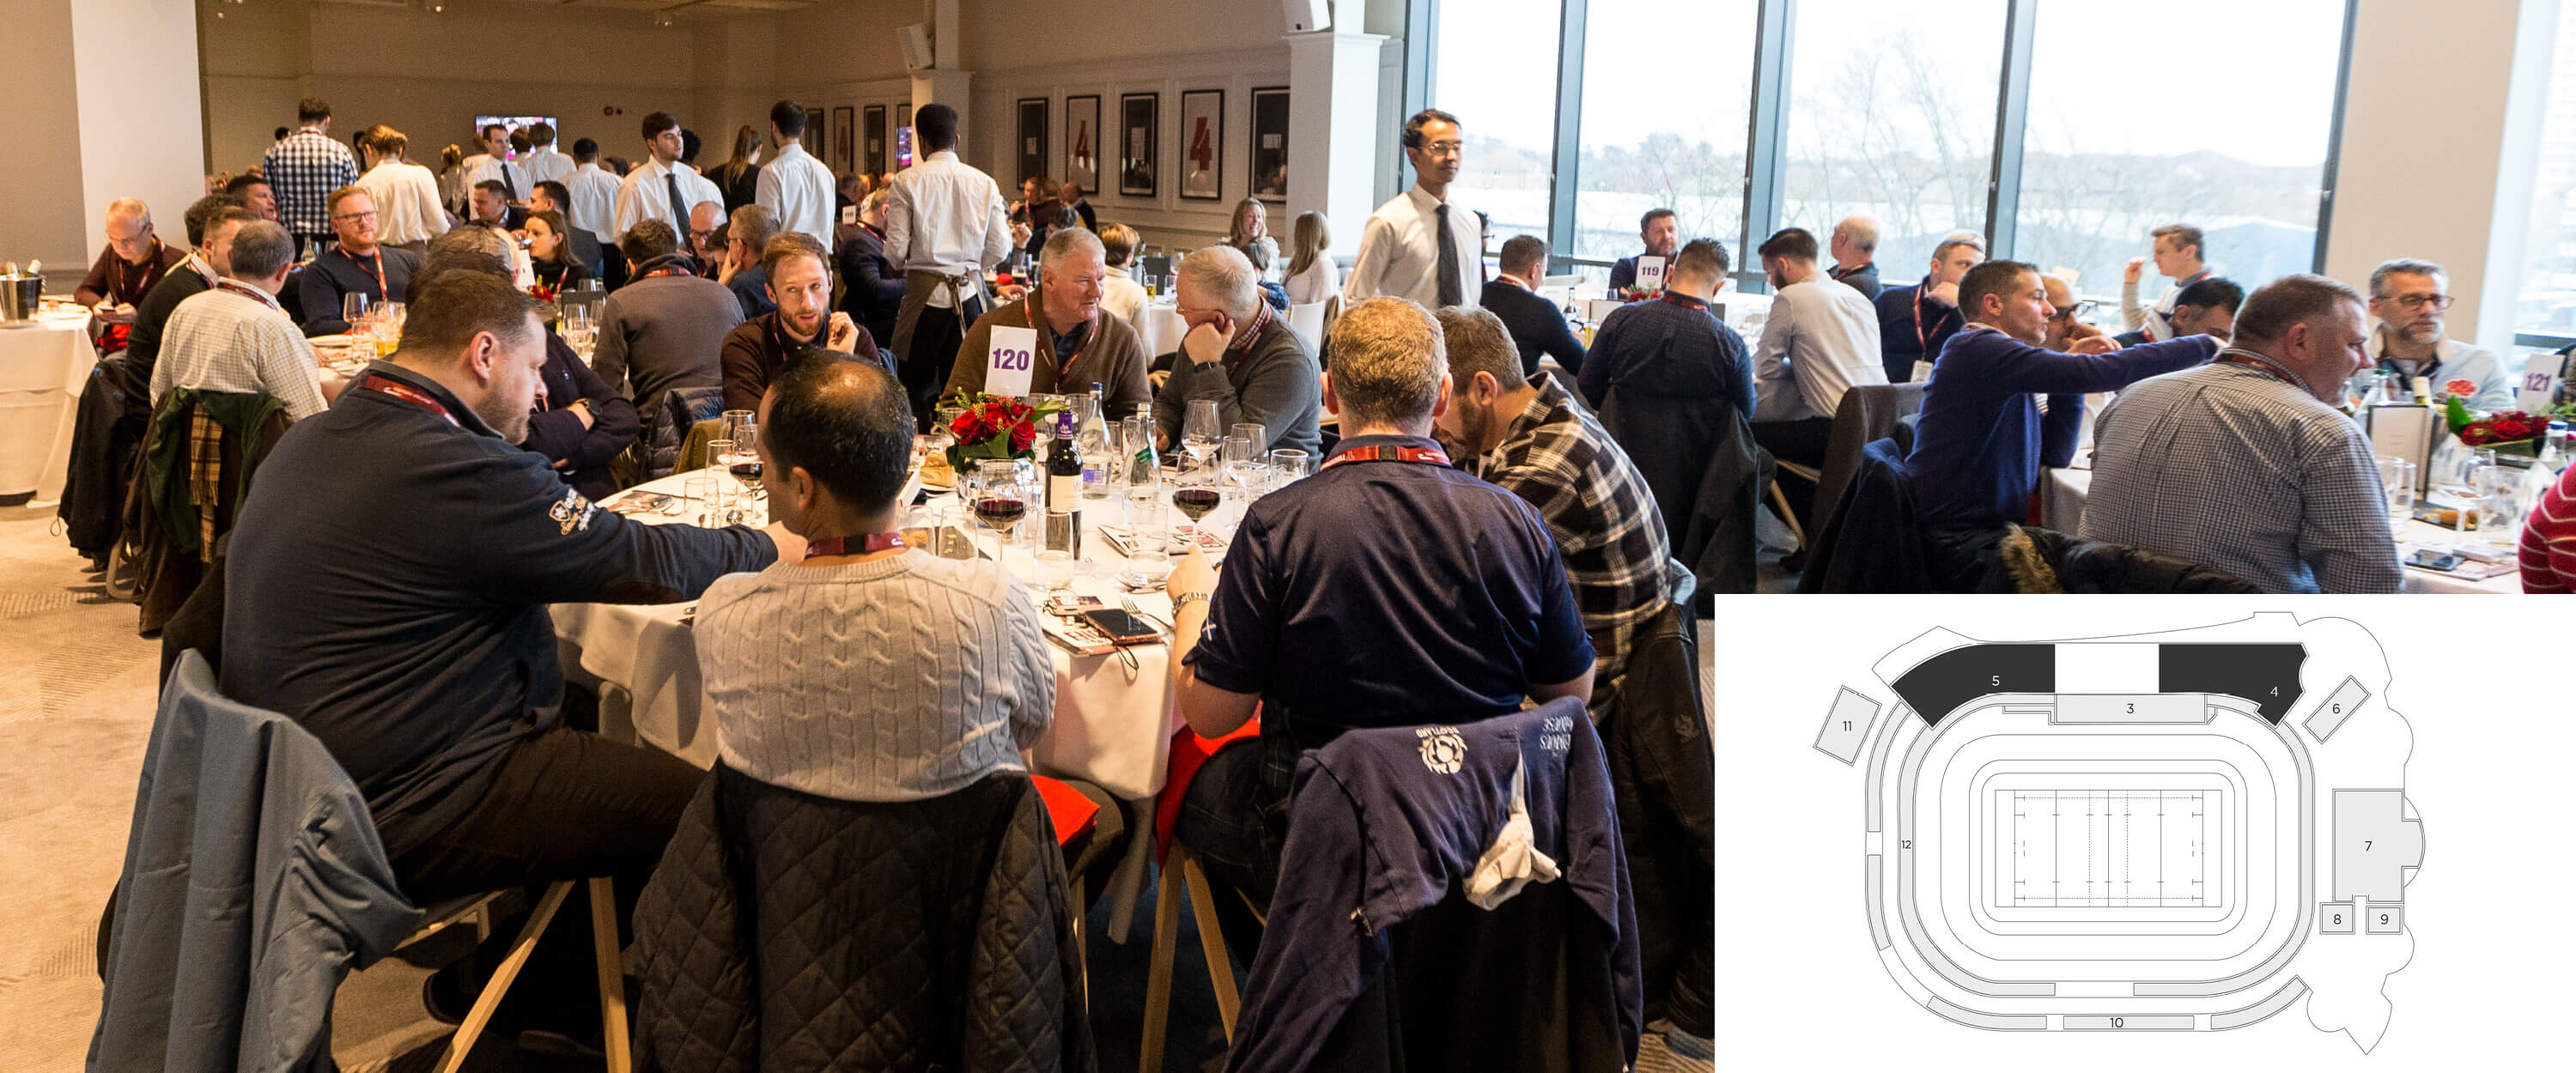 Guests enjoying a dual aspect pitch view and fine dining with rugby hospitality at The Lock restaurant in Twickenham Stadium.